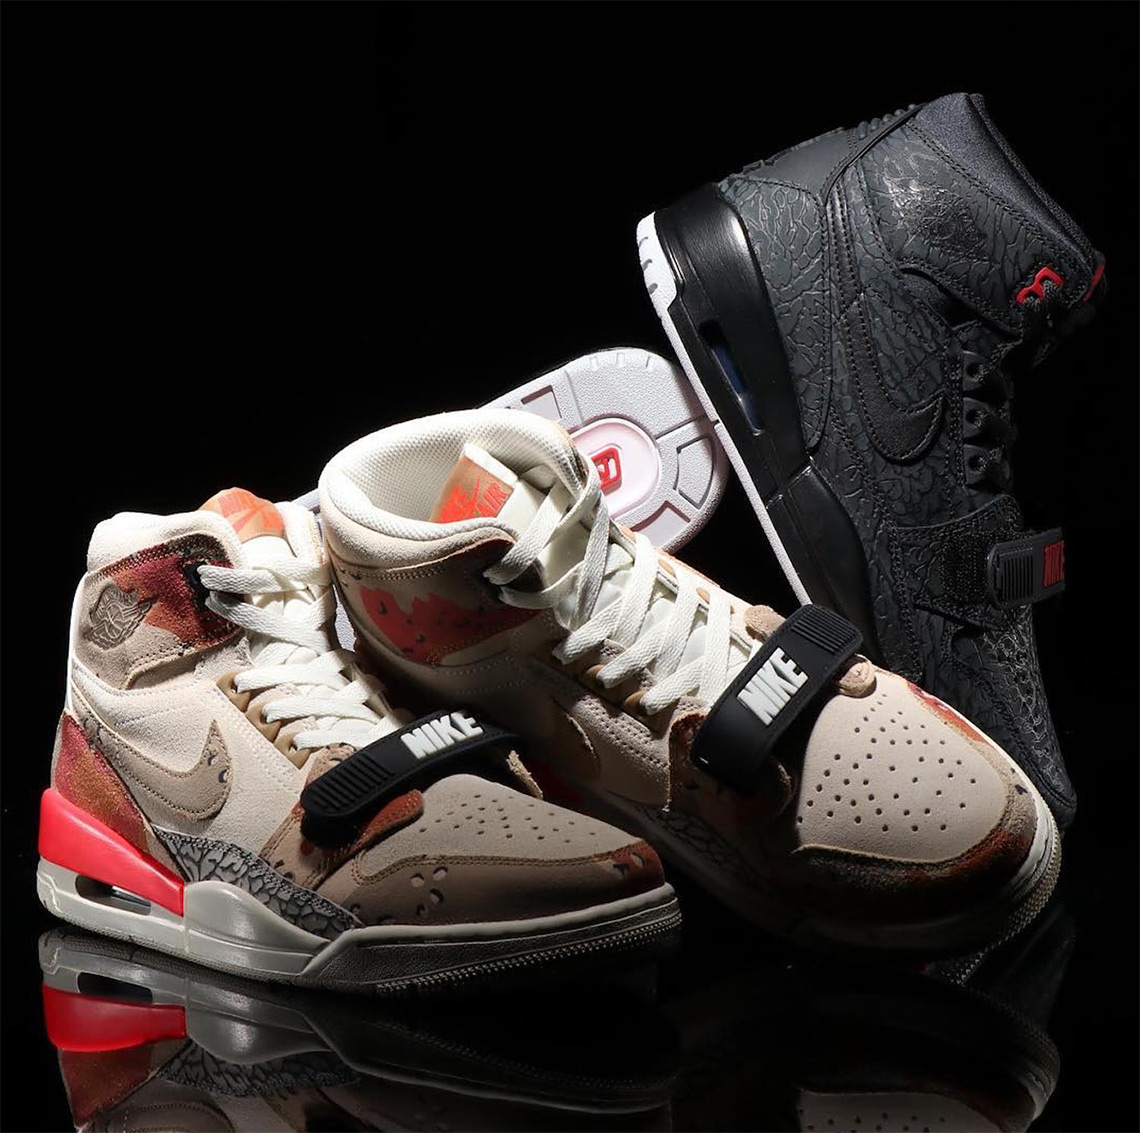 68db0fa5 Jordan Legacy 312 $150. Color: Anthracite/Black-Infrared 23